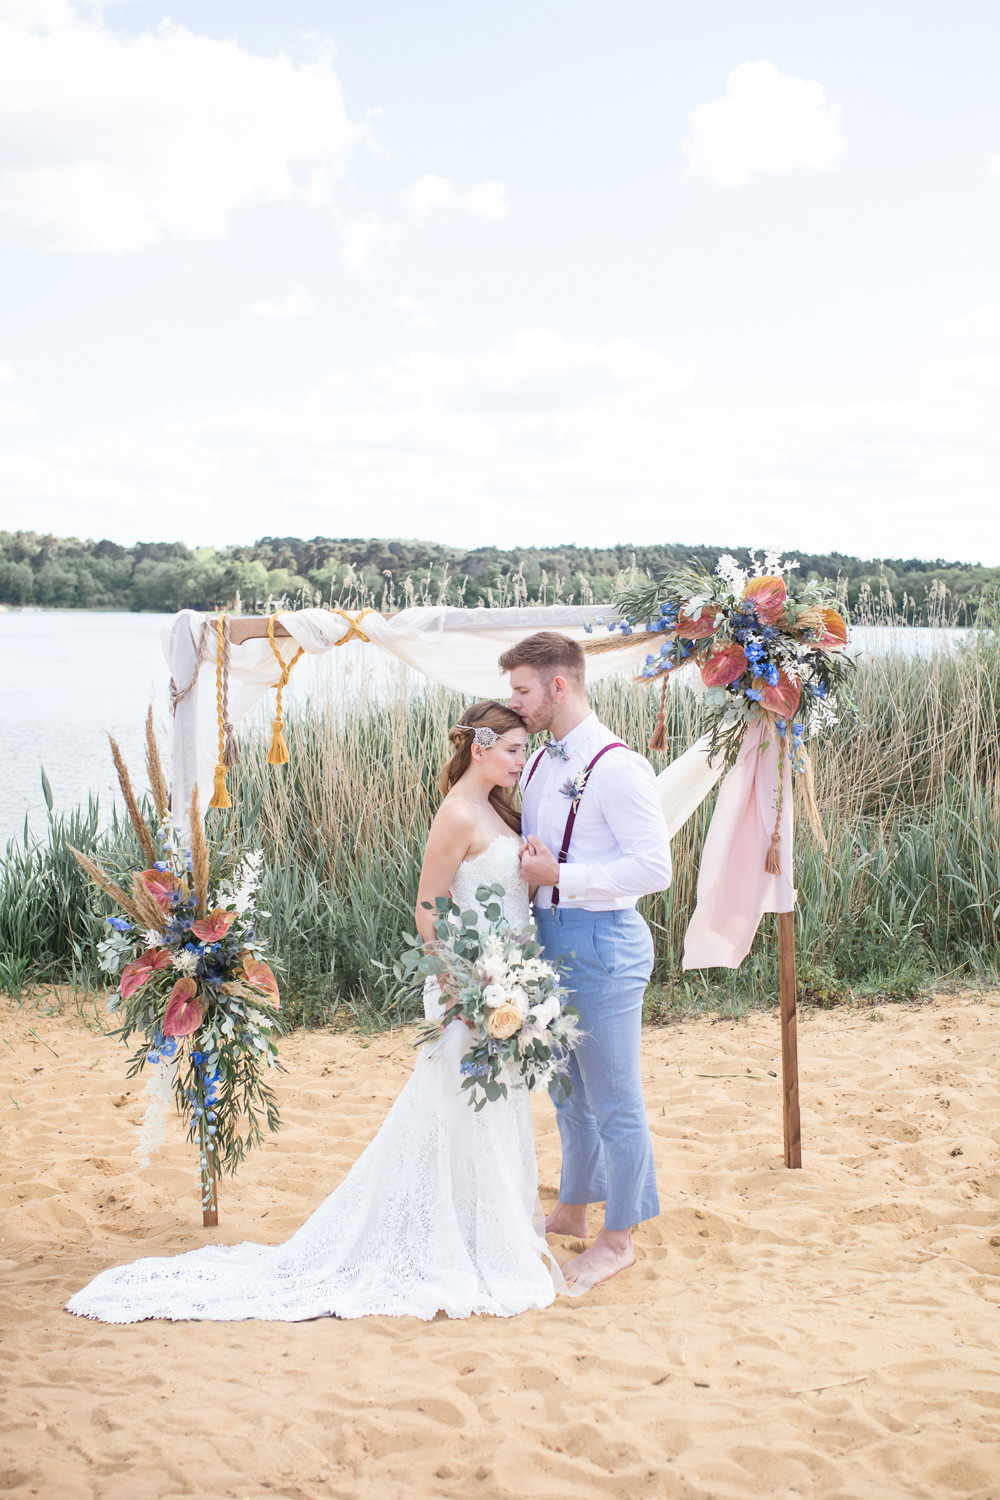 Ethereal & Edgy Boho Beach Wedding Ideas